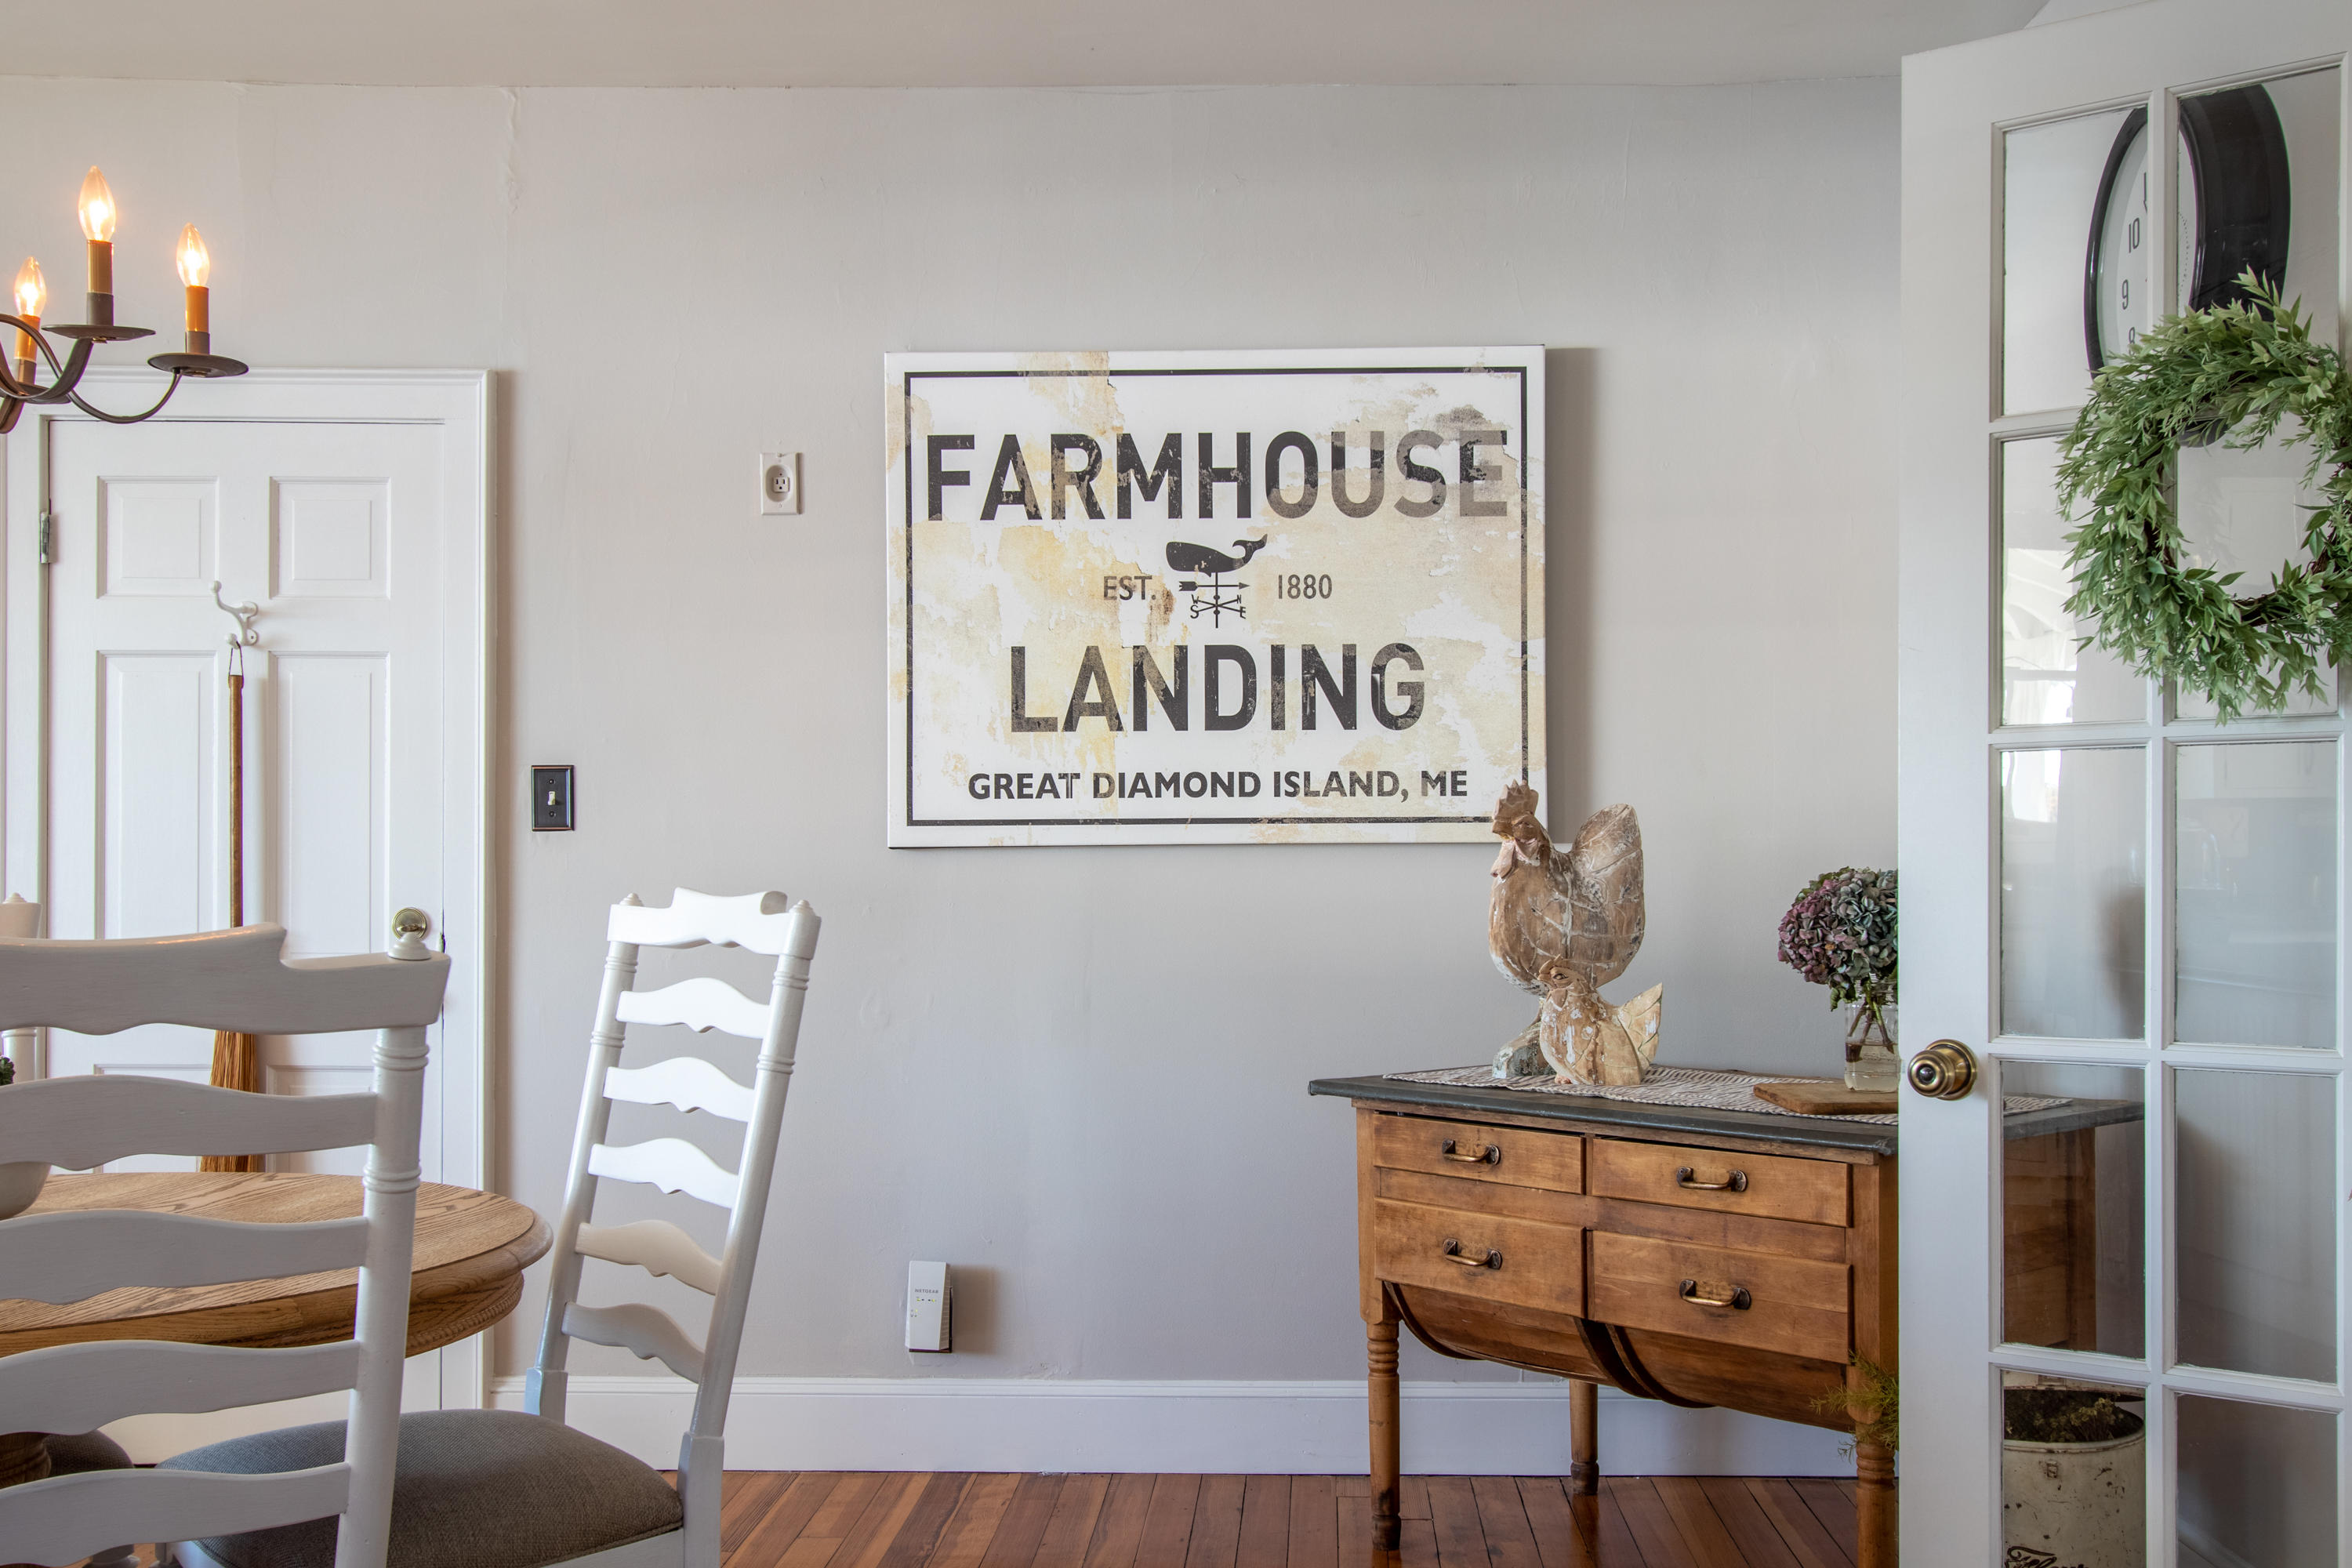 Farmhouse Landing